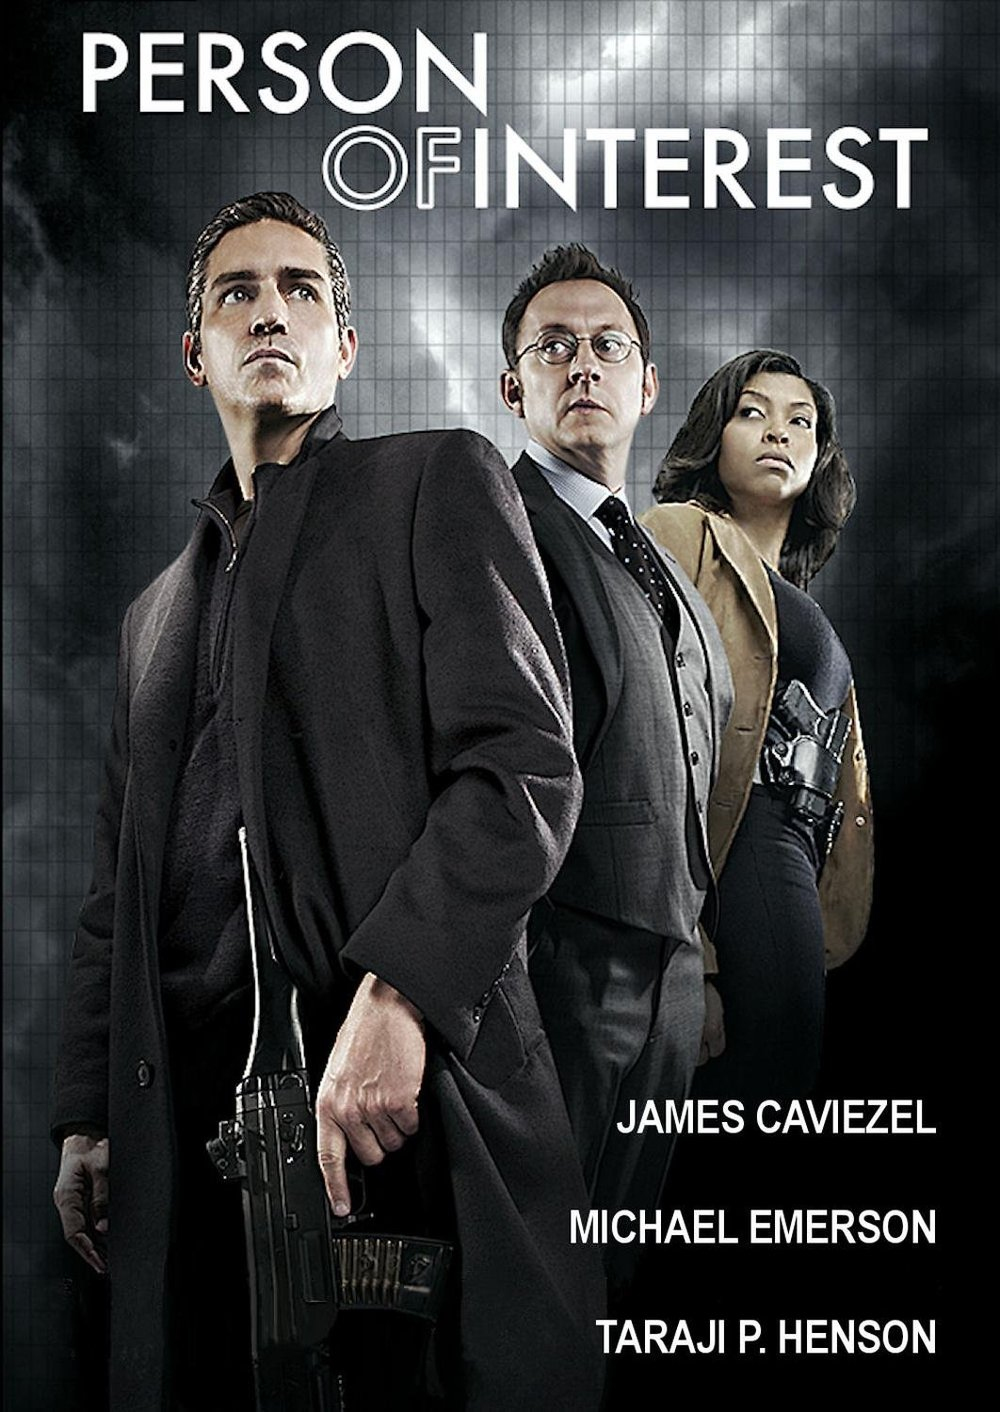 person_of_interest_2011_4209_poster.jpg